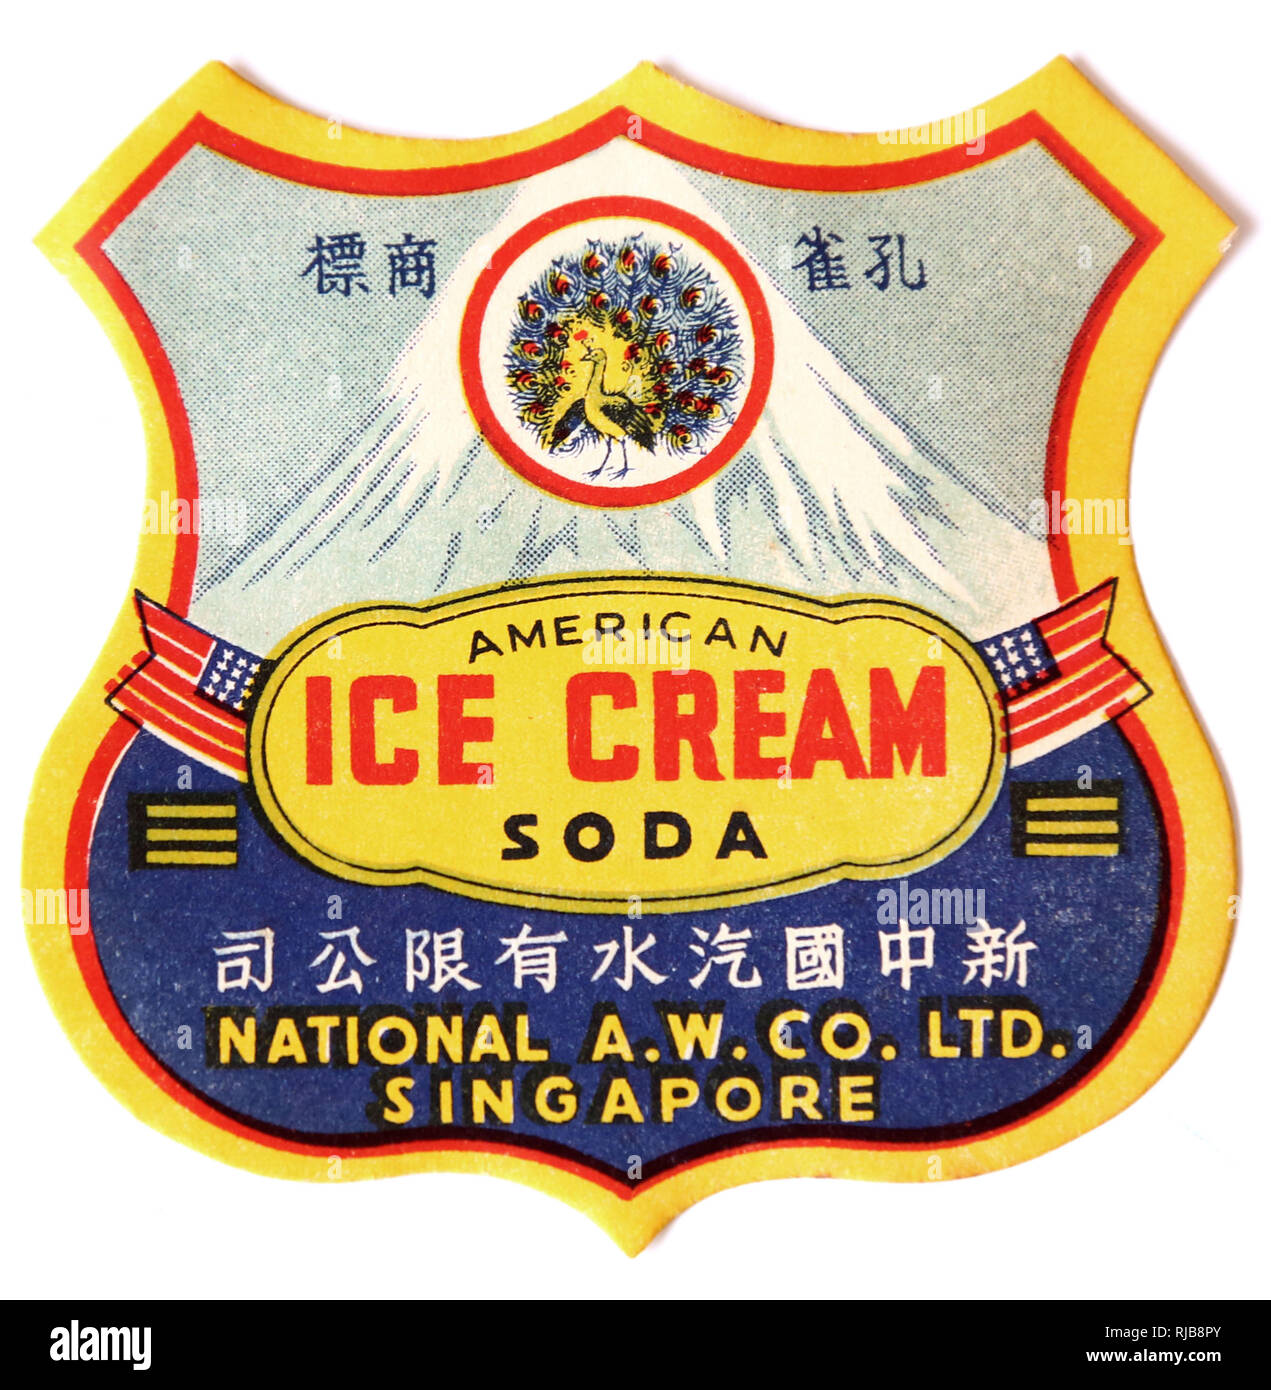 Peacock Brand Chinese Ice Cream Soda drink label from the National Aerated Water Company Ltd, Singapore. Also known as the Singapore New China Soda Drink Ltd company in the 1940s - Stock Image